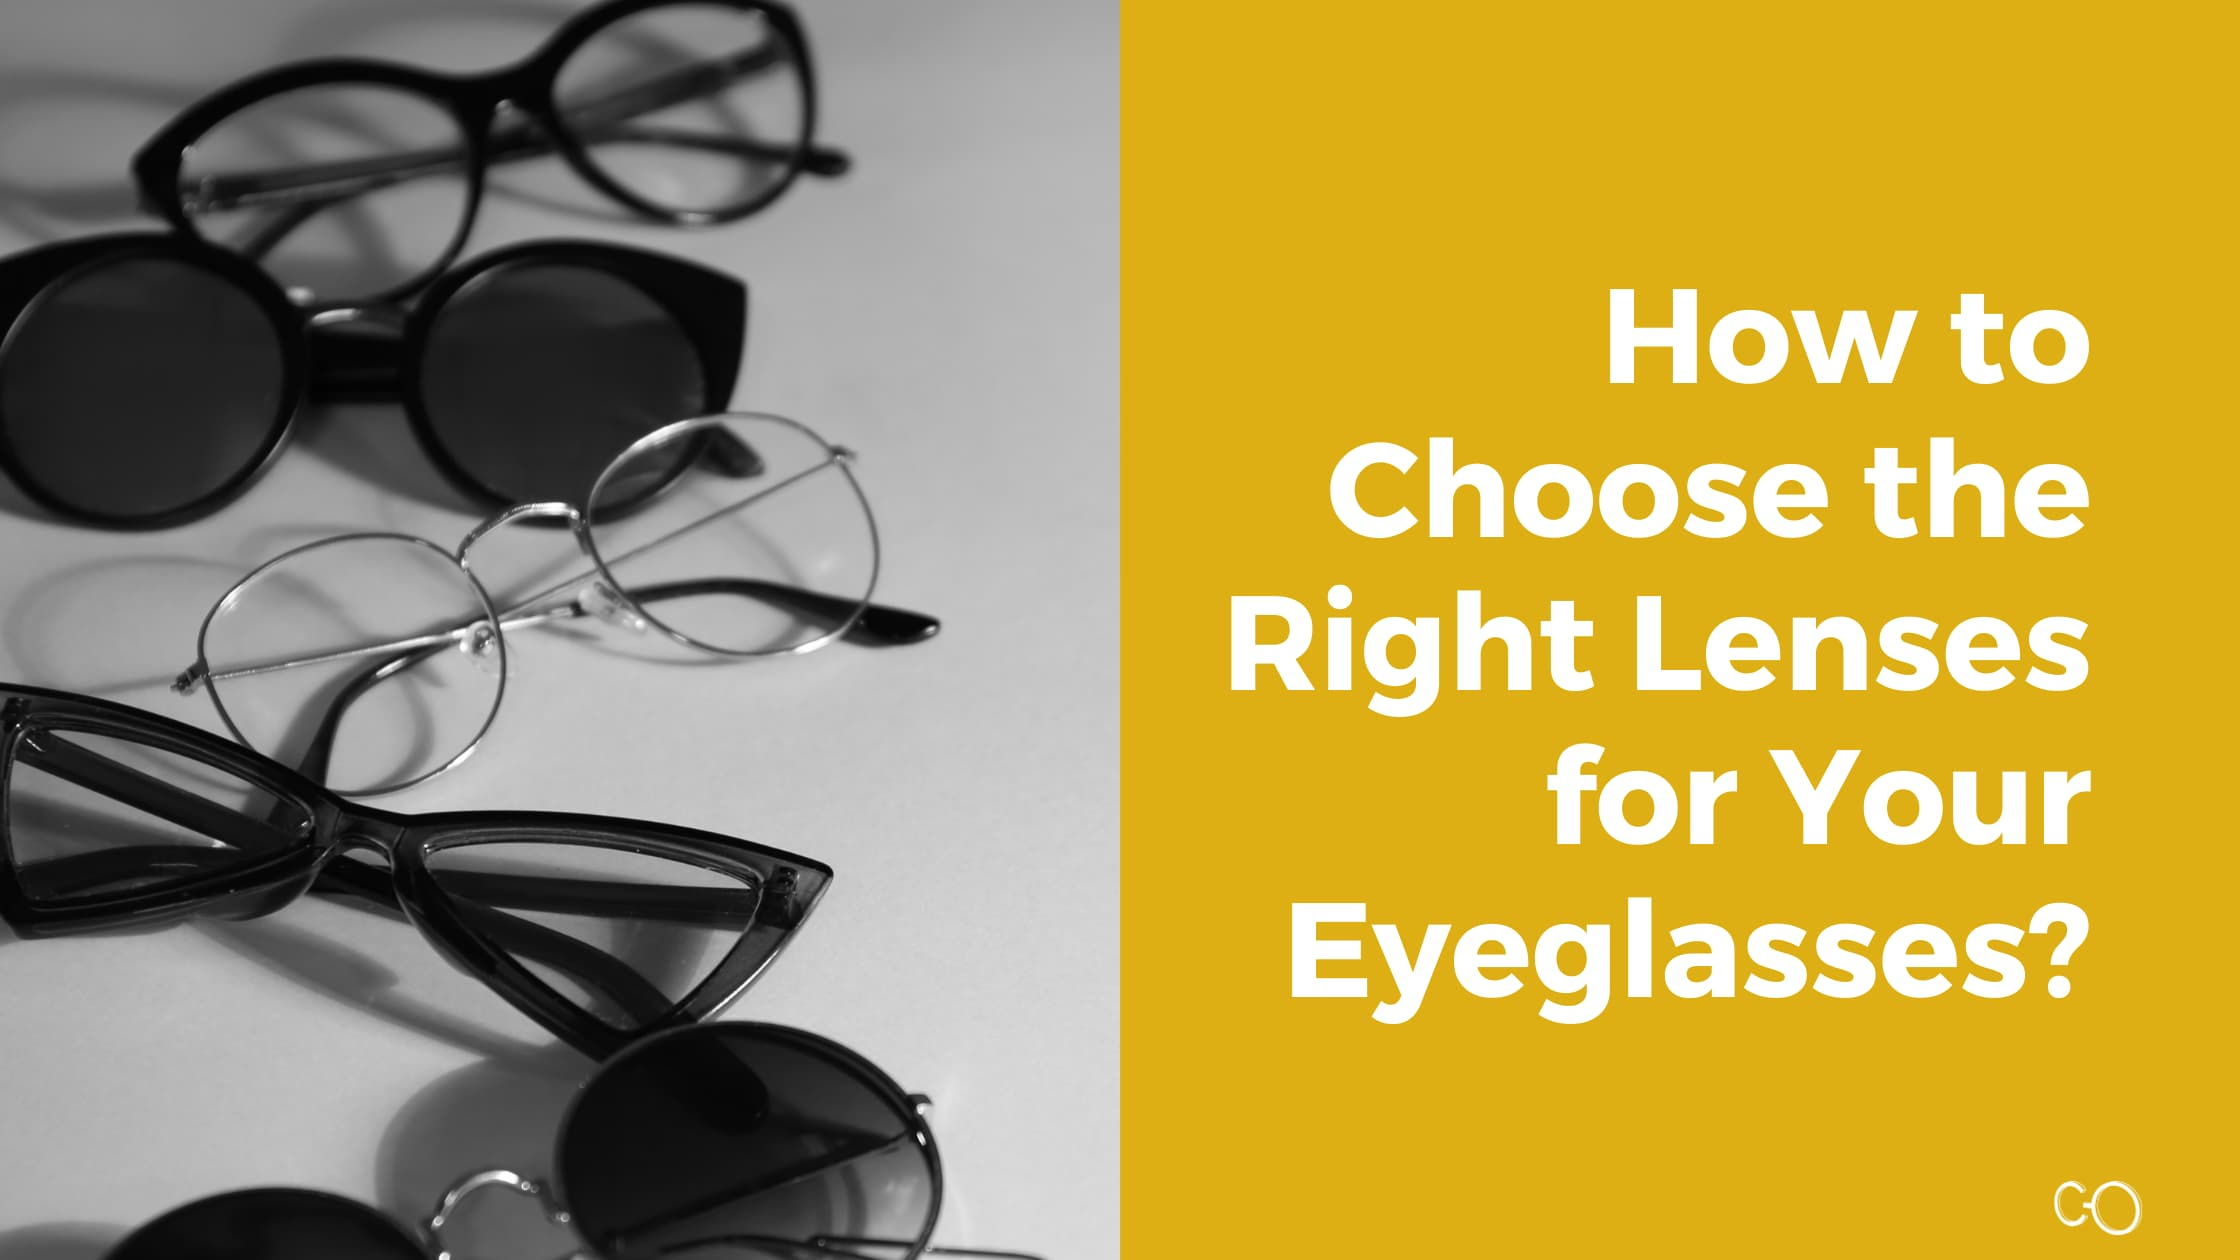 How to Choose Lenses for Your Eyeglasses?